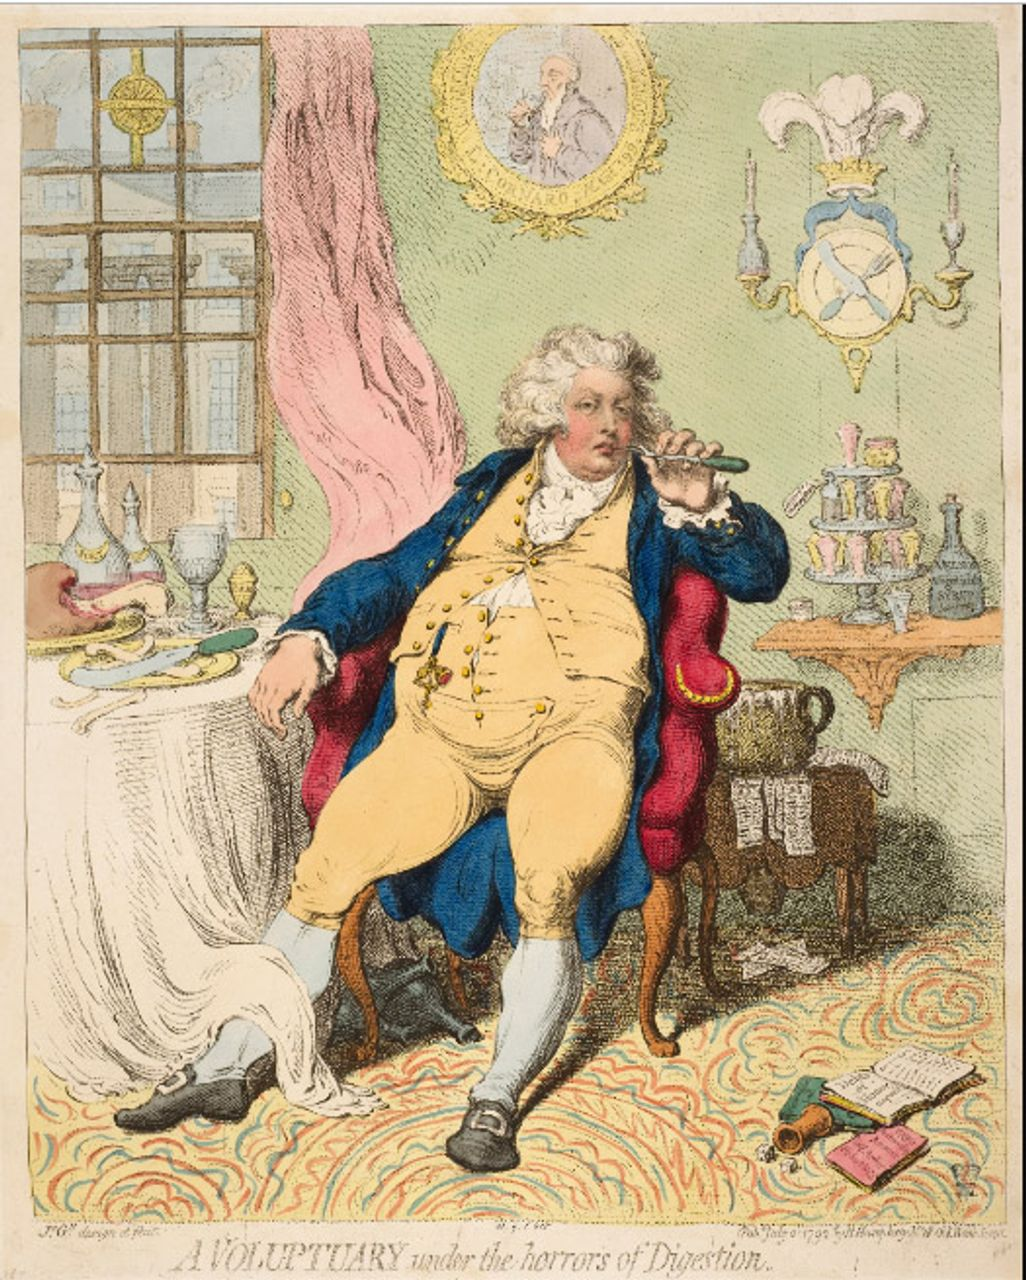 A Voluptuary under the Horrors of Digestion, James Gillray, 1792, courtesy of the British Museum